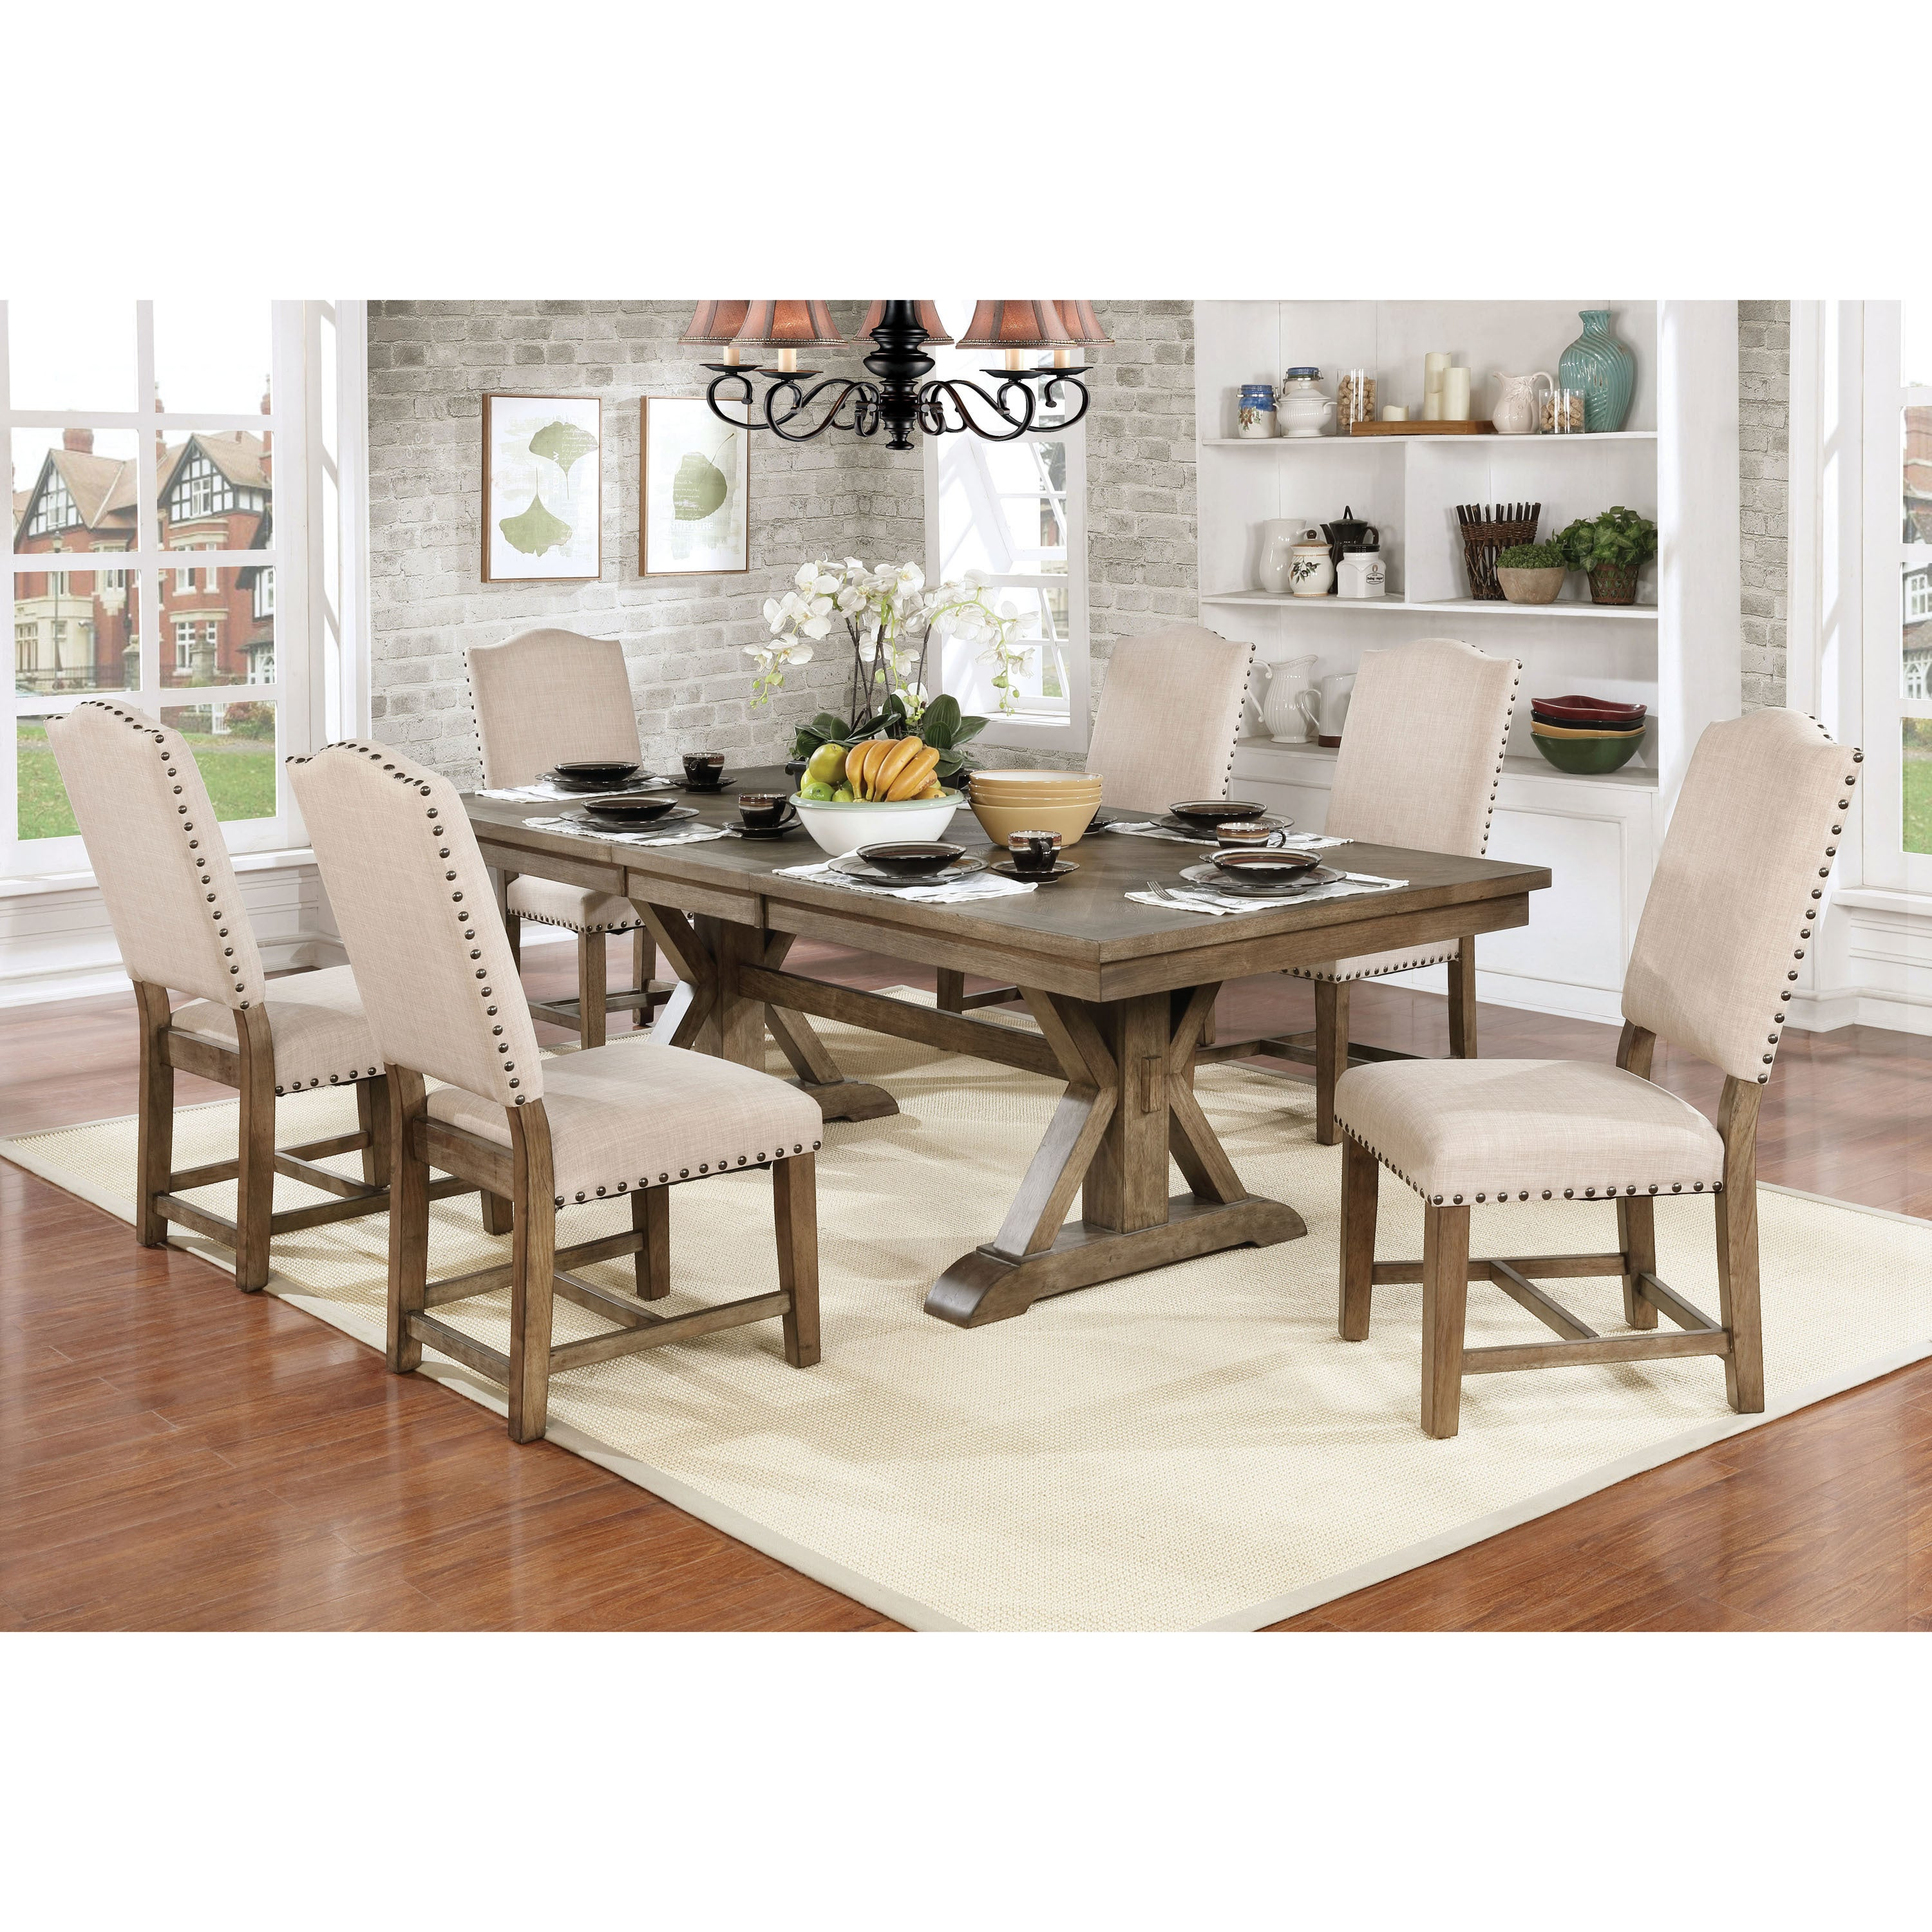 Furniture Of America Cooper Rustic Light Oak Finish Wood Trestle Dining  Table   Free Shipping Today   Overstock   25760201